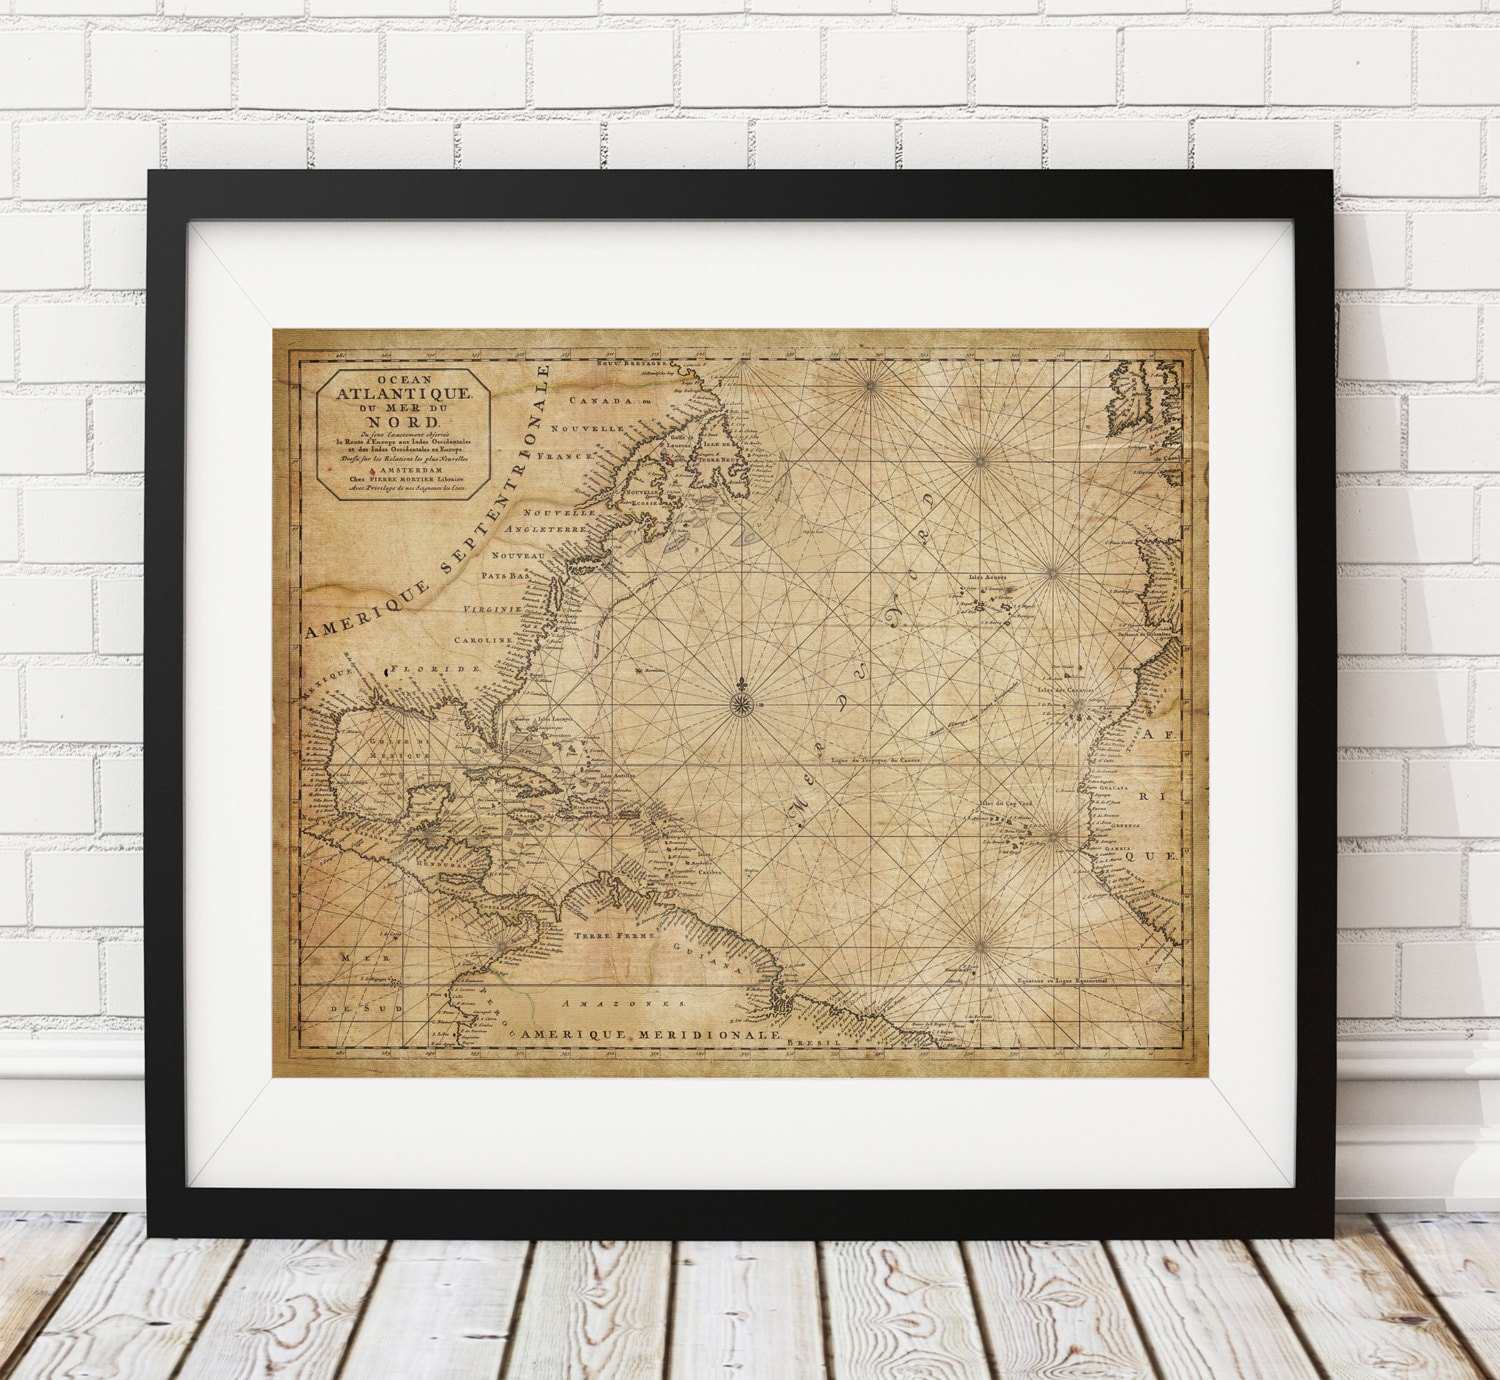 North Atlantic Ocean Nautical Map Print, Vintage Map Art, Antique ...